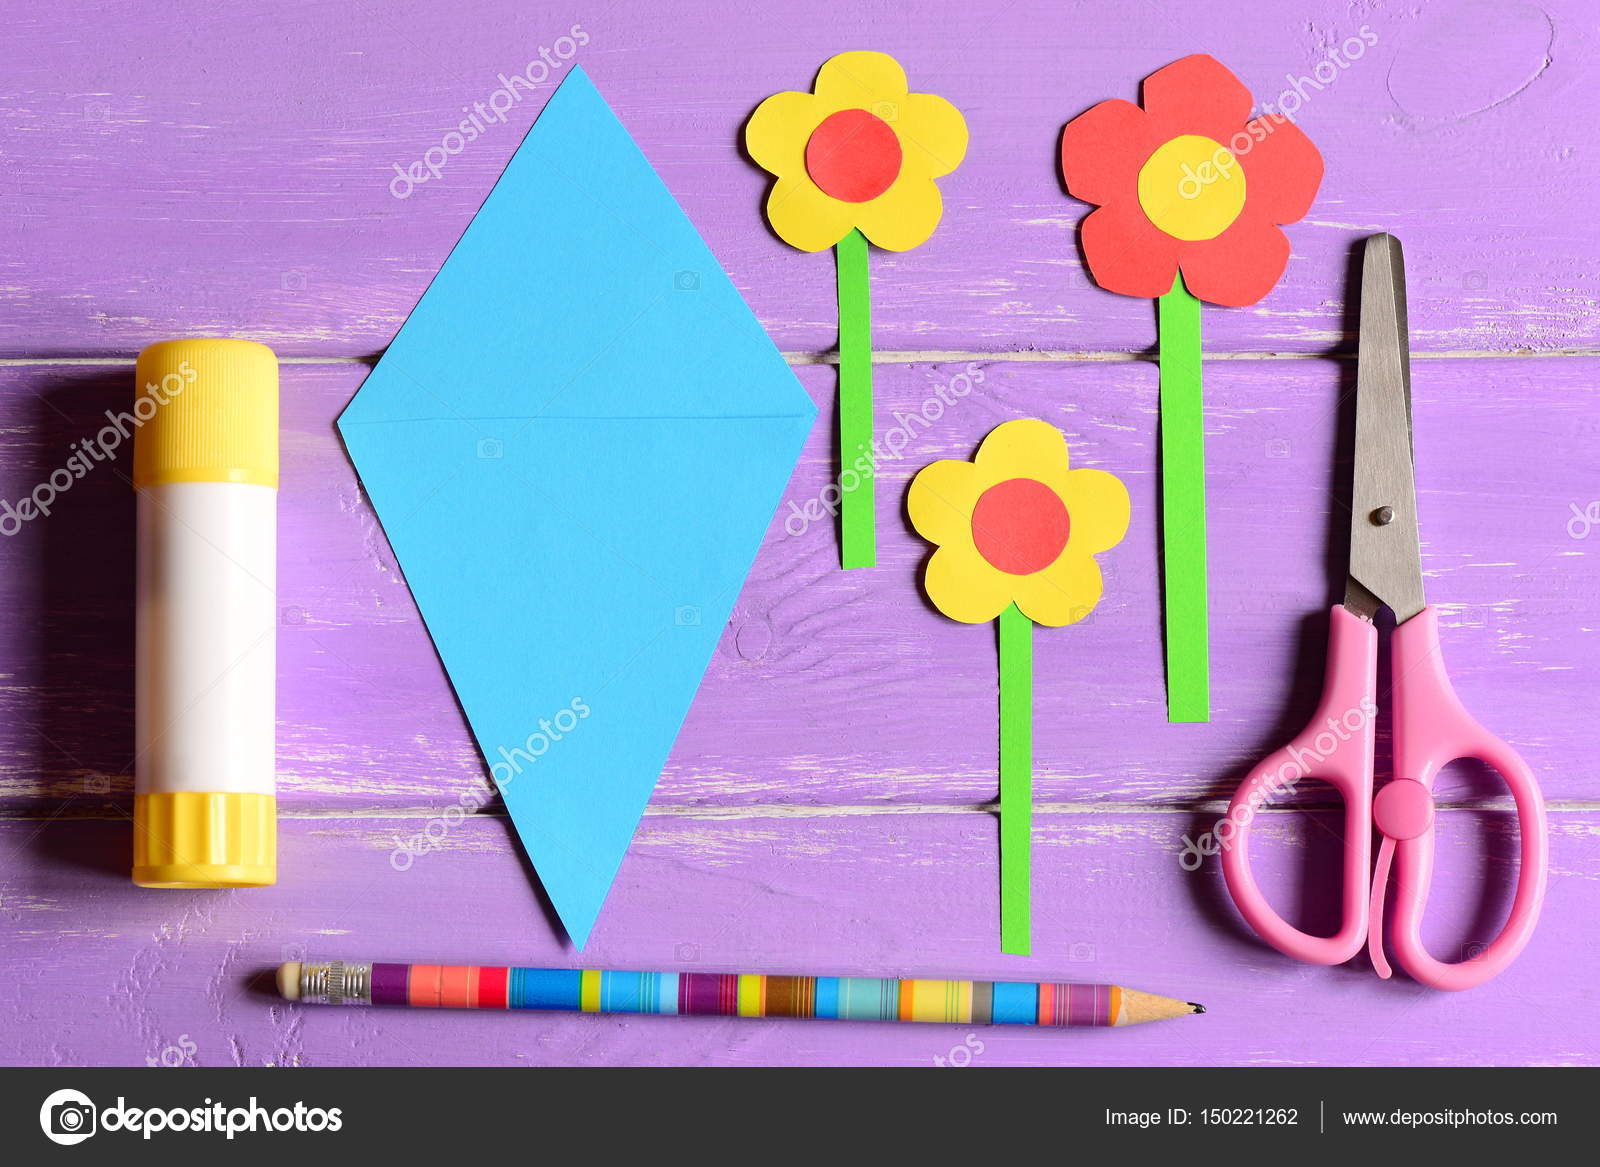 Making Paper Crafts For Mothers Day Or Birthday Step Flowers Scissors Glue Stick Templates Pencil On A Table Set Kids Art Activity